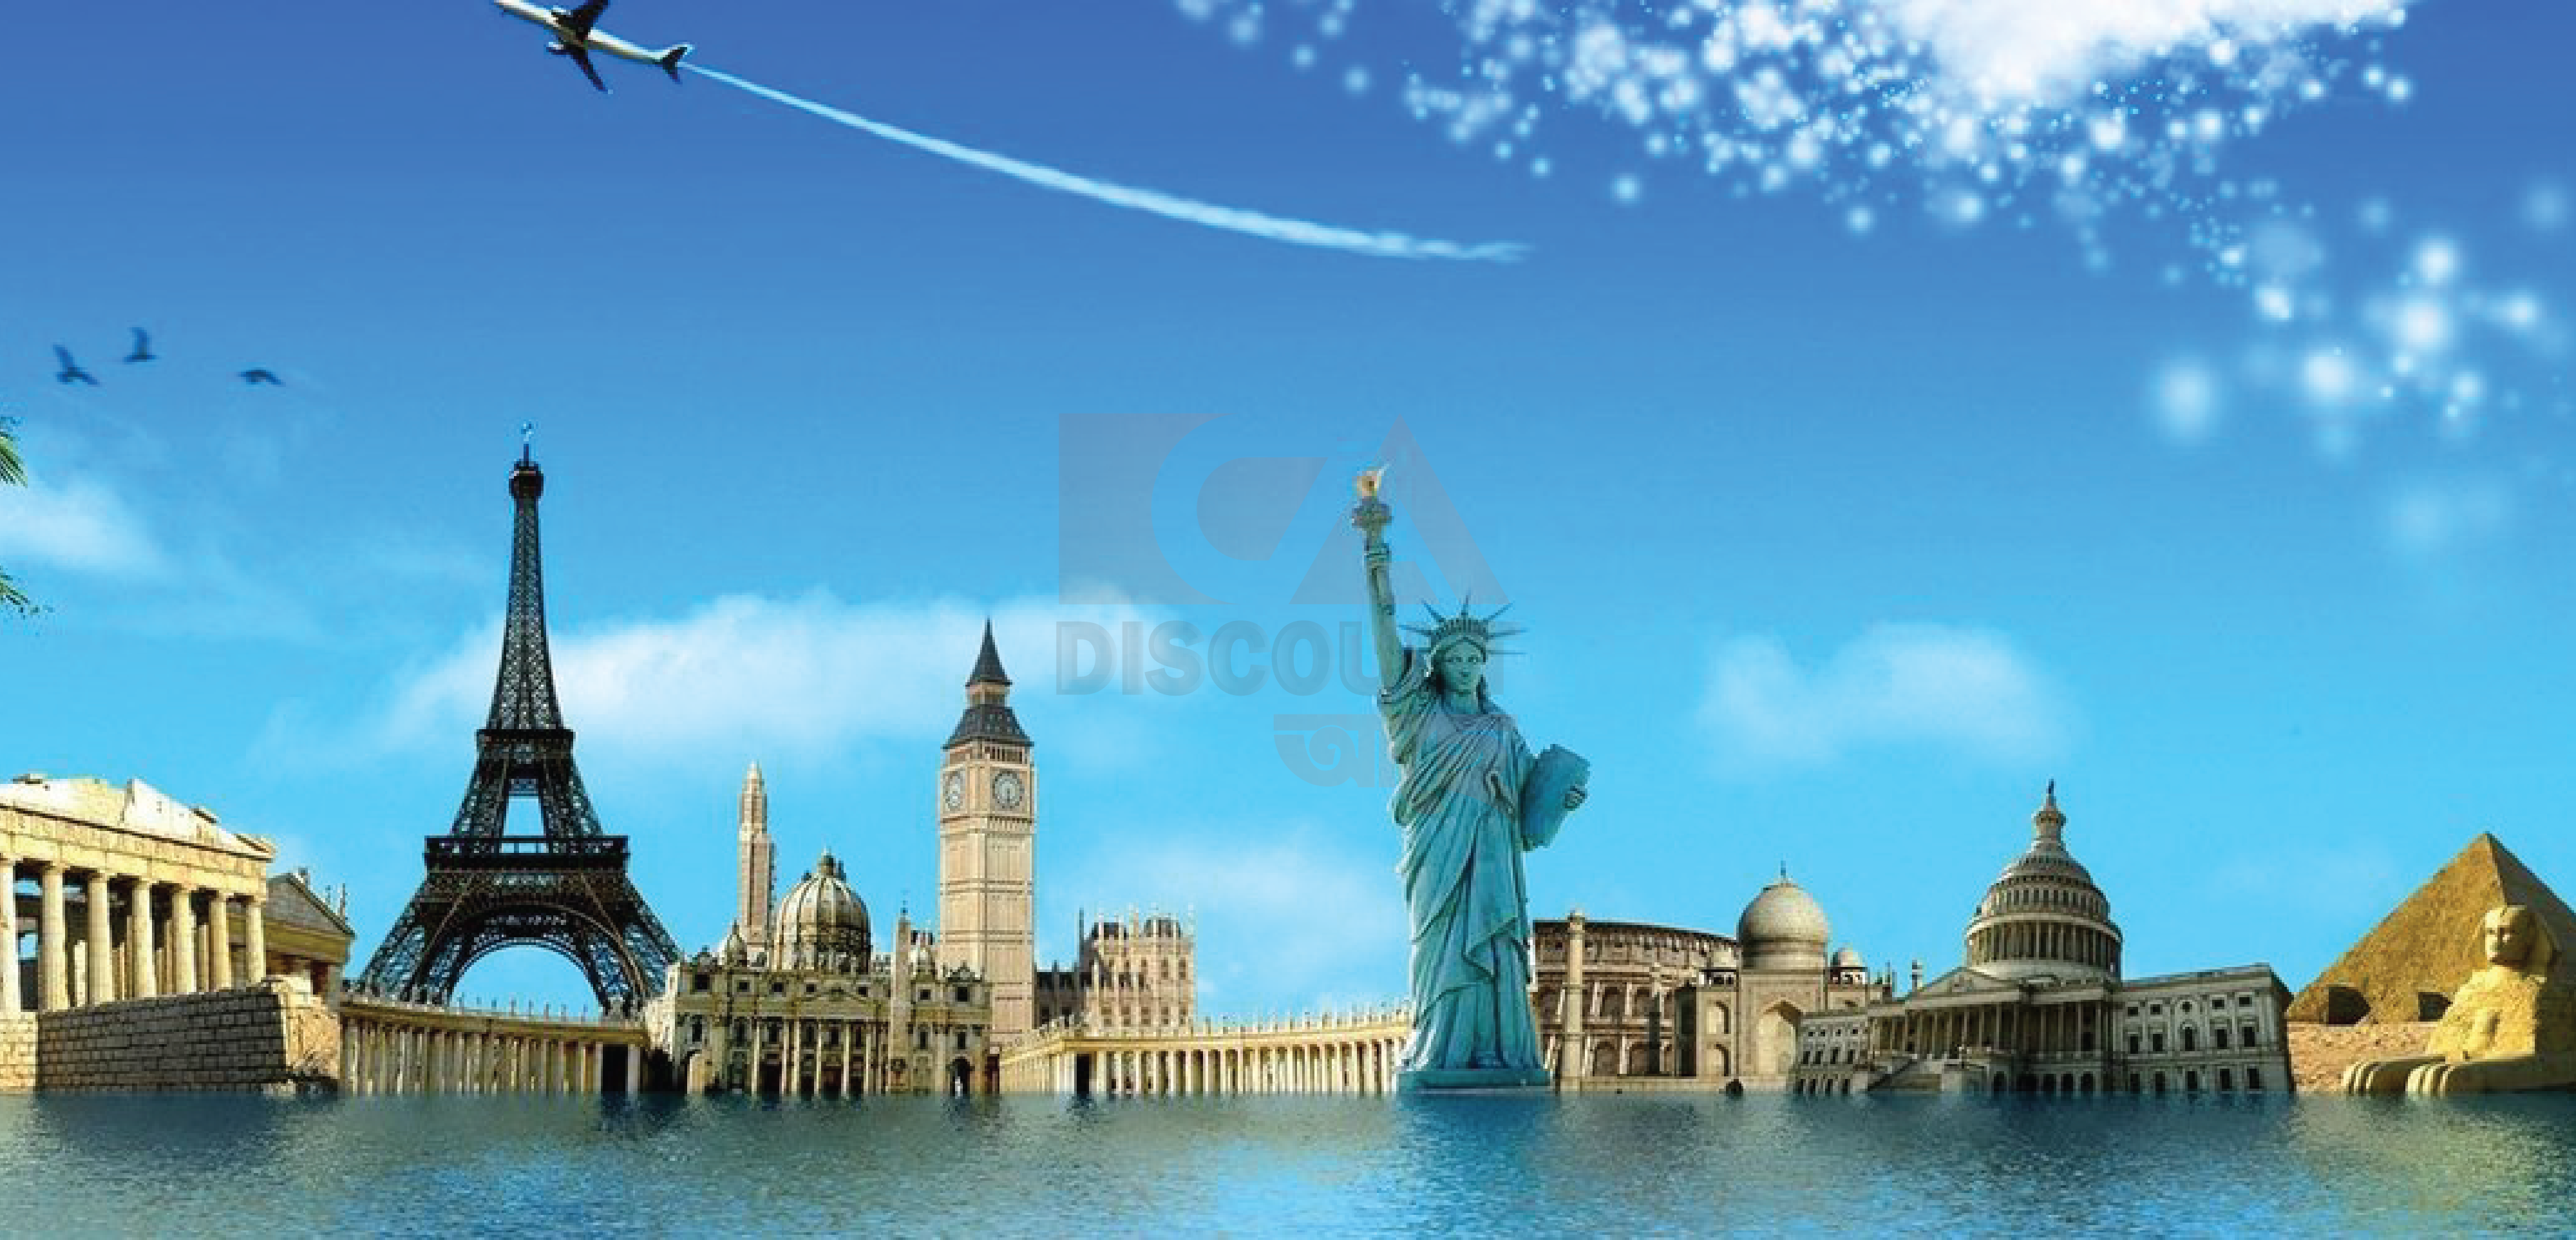 Up to 8% discount on travel & tour